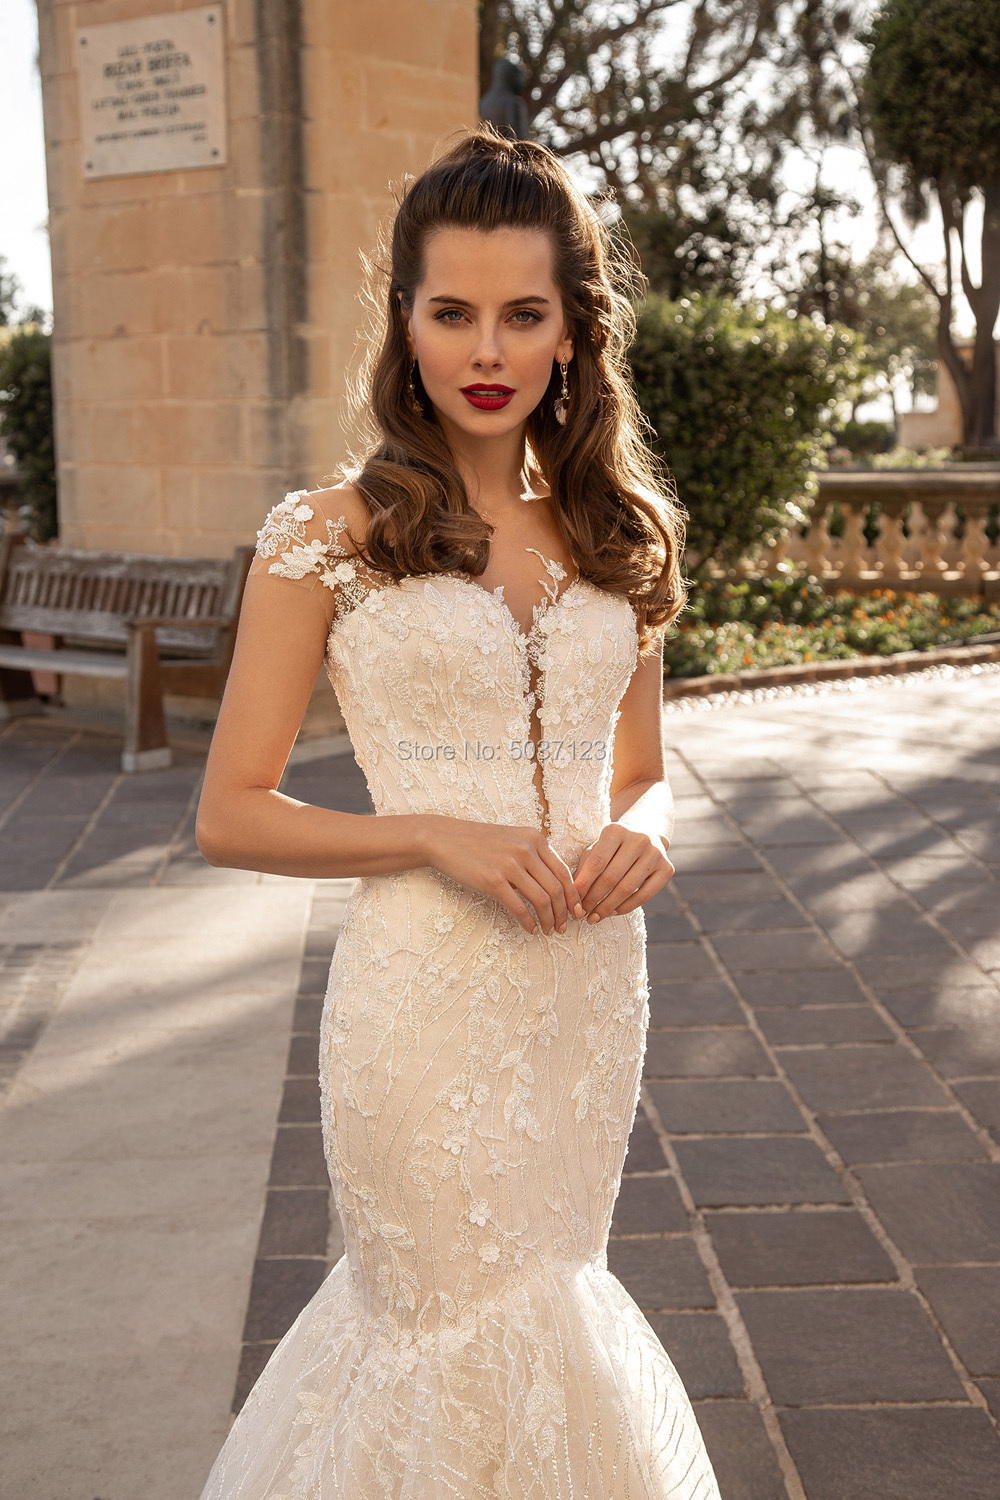 Image 2 - Mermaid Wedding Dresses Sweetheart Lace Appliques Bridal Gown Button Illusion Sleeveless Vestido De Noiva Plus Size Court Train-in Wedding Dresses from Weddings & Events